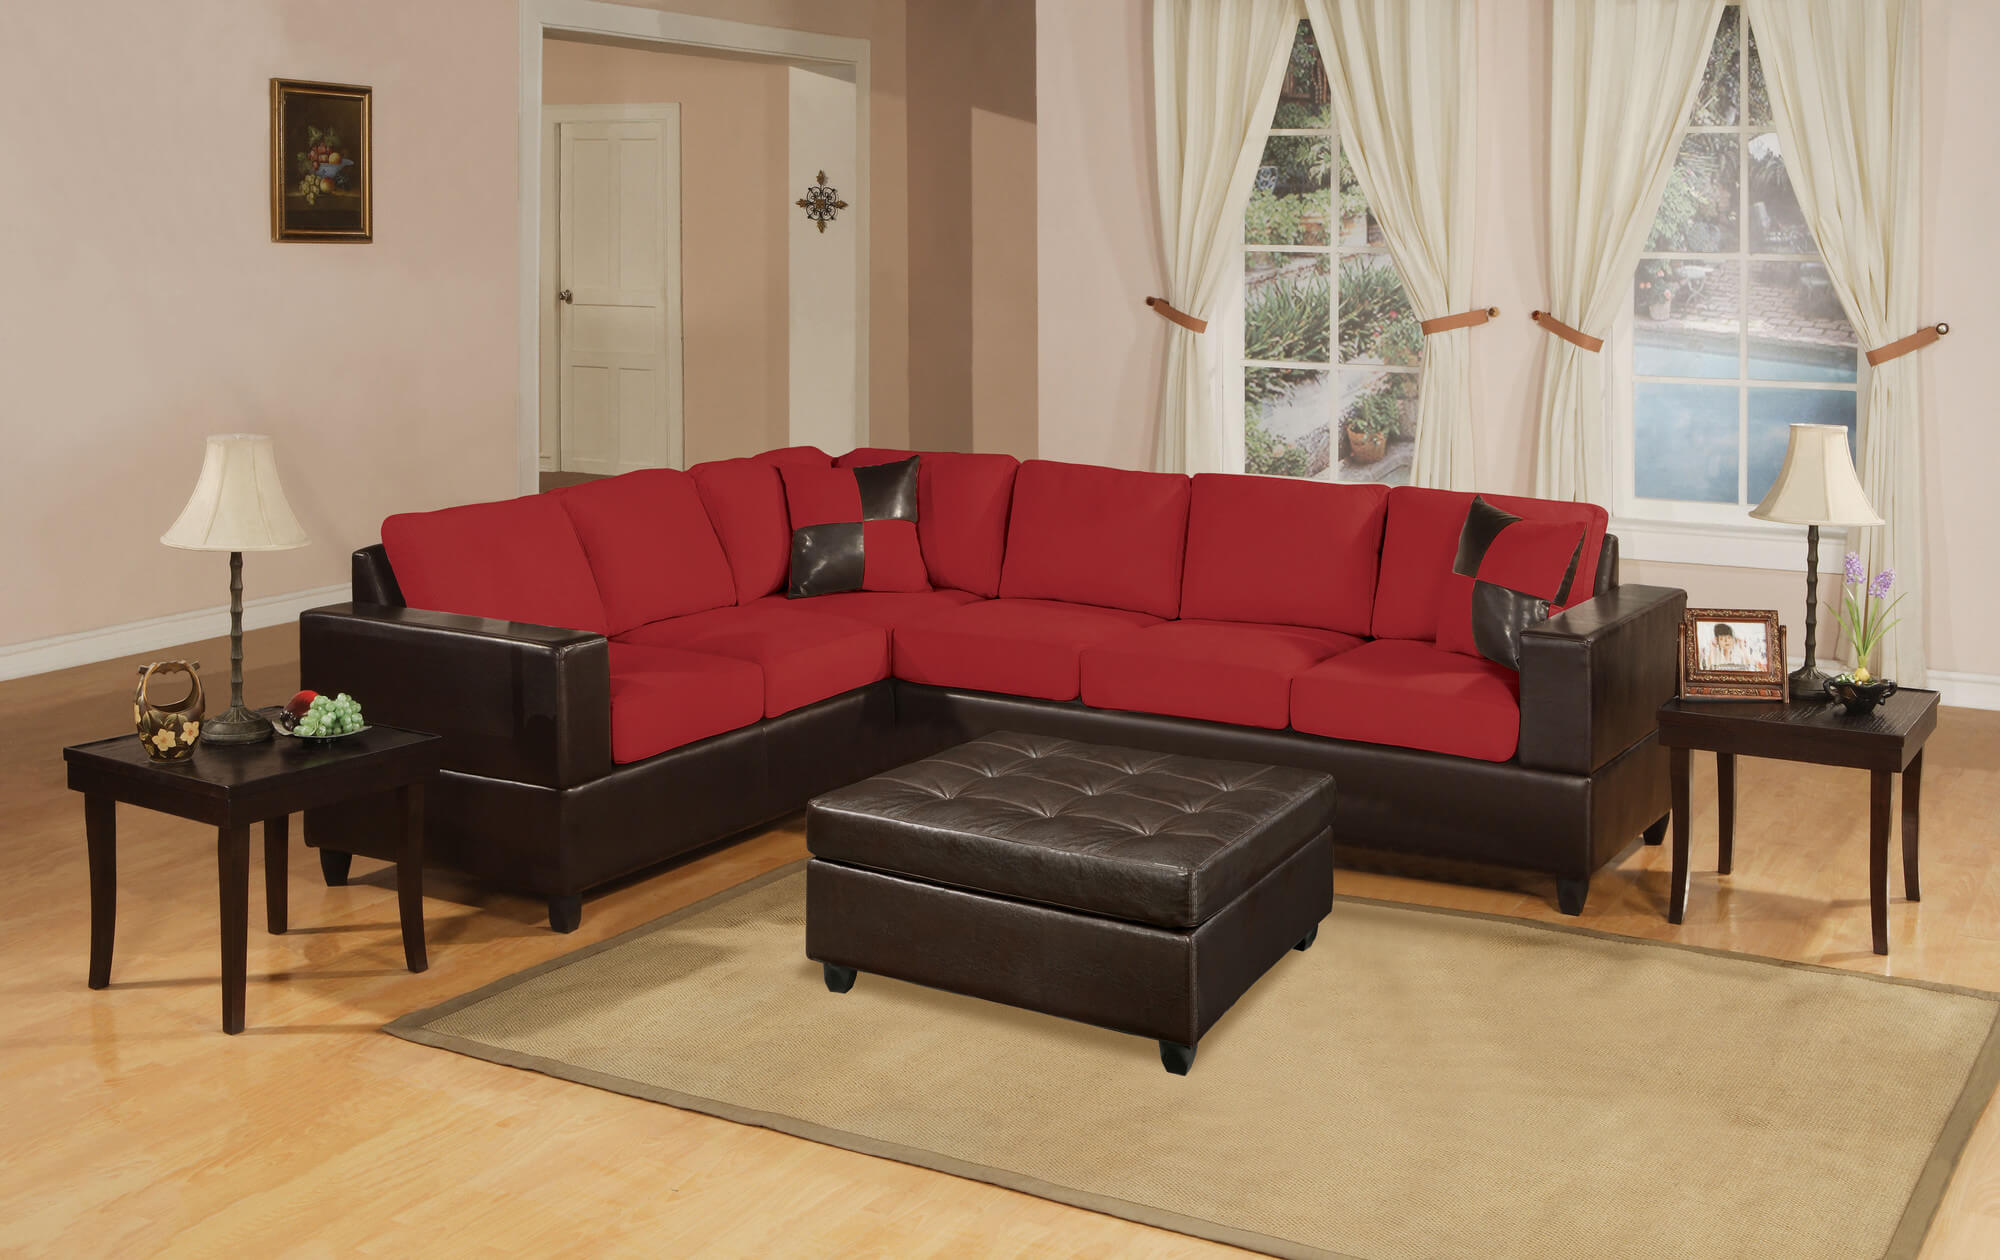 Bobkona Red And Chocolate Sectional Sofa